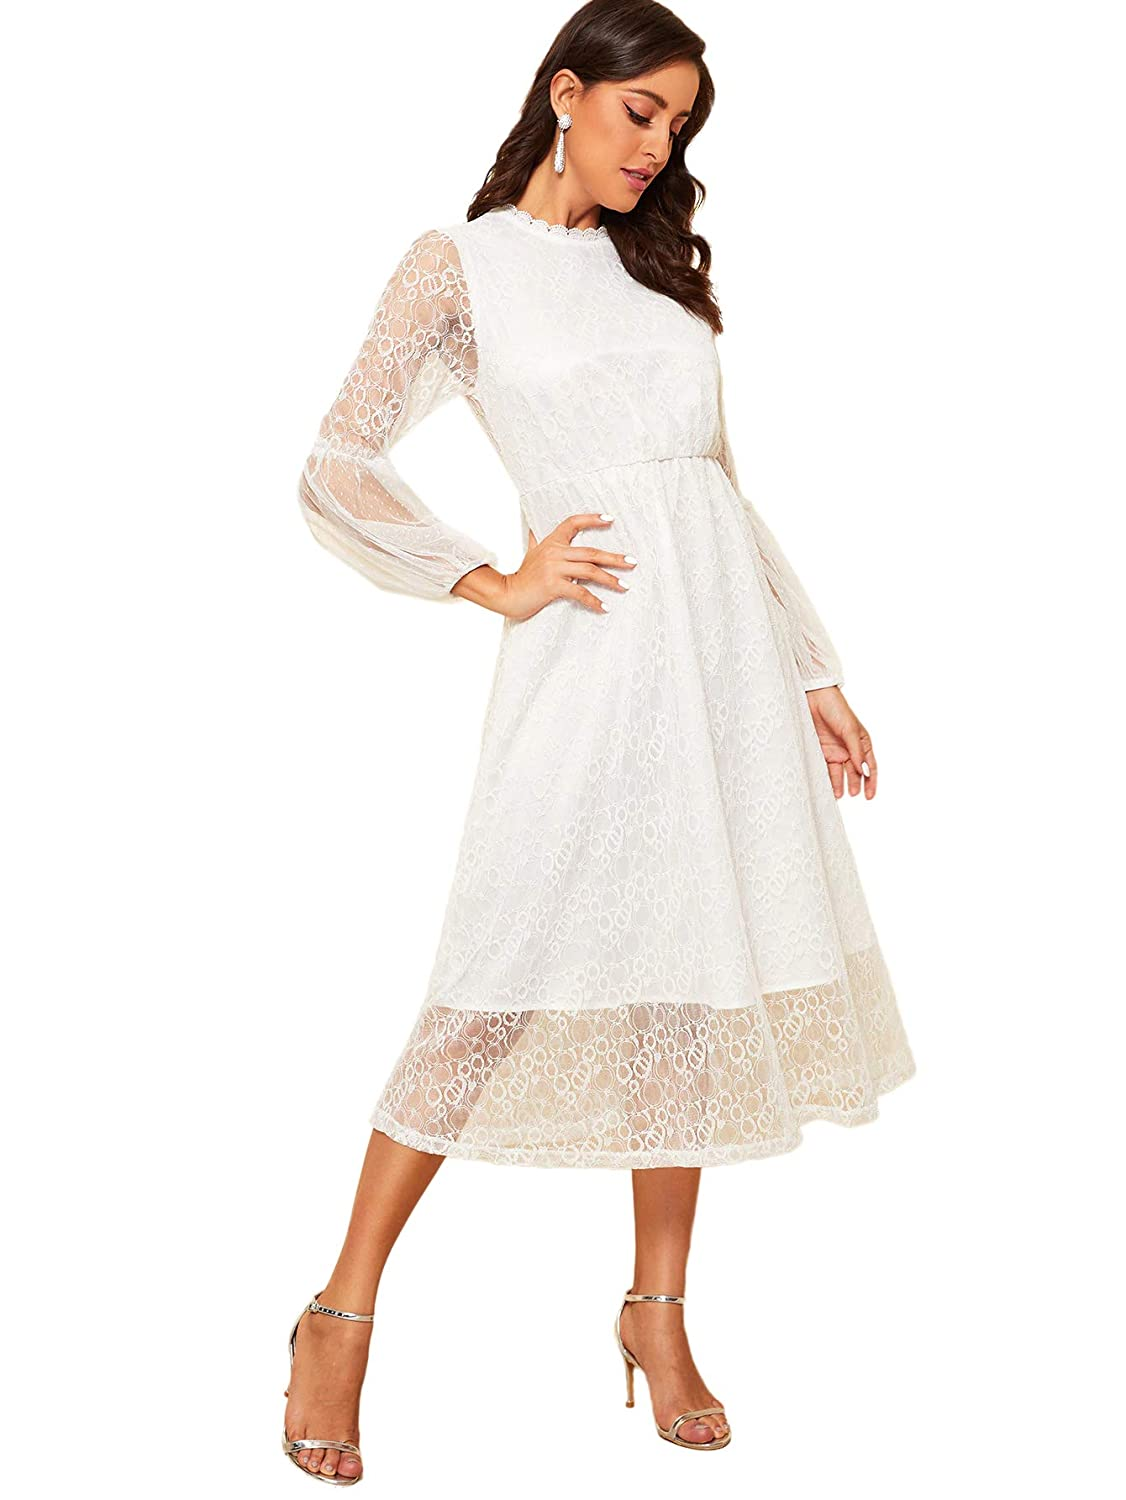 Old Fashioned Dresses | Old Dress Styles Romwe Womens Elegant Mesh Lantern Long Sleeve Mock Neck Swing Flared Formal Cocktail Party Wedding Dress $28.99 AT vintagedancer.com